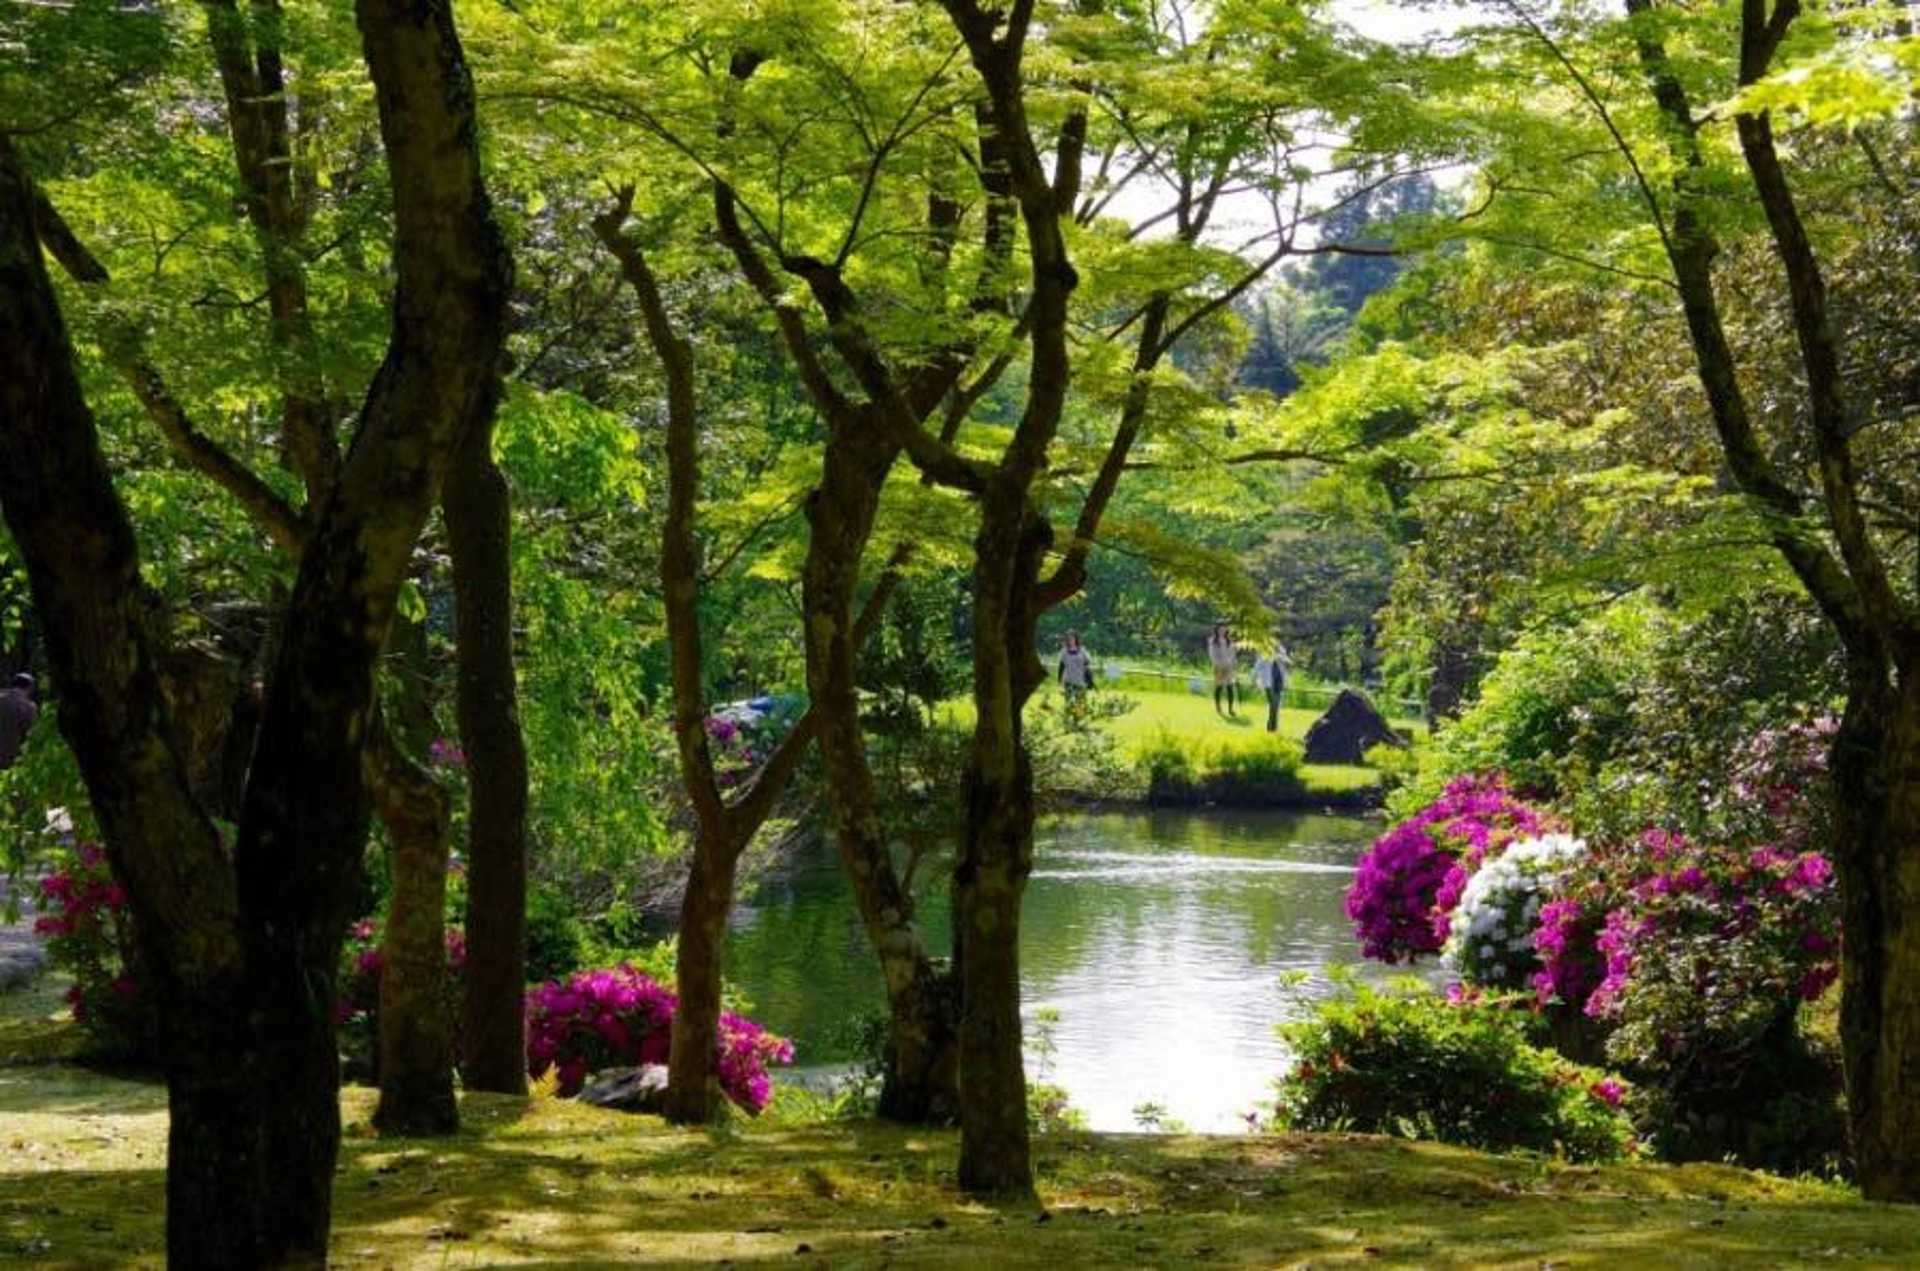 Go for a sun-kissed stroll at Manyo Botanical Garden